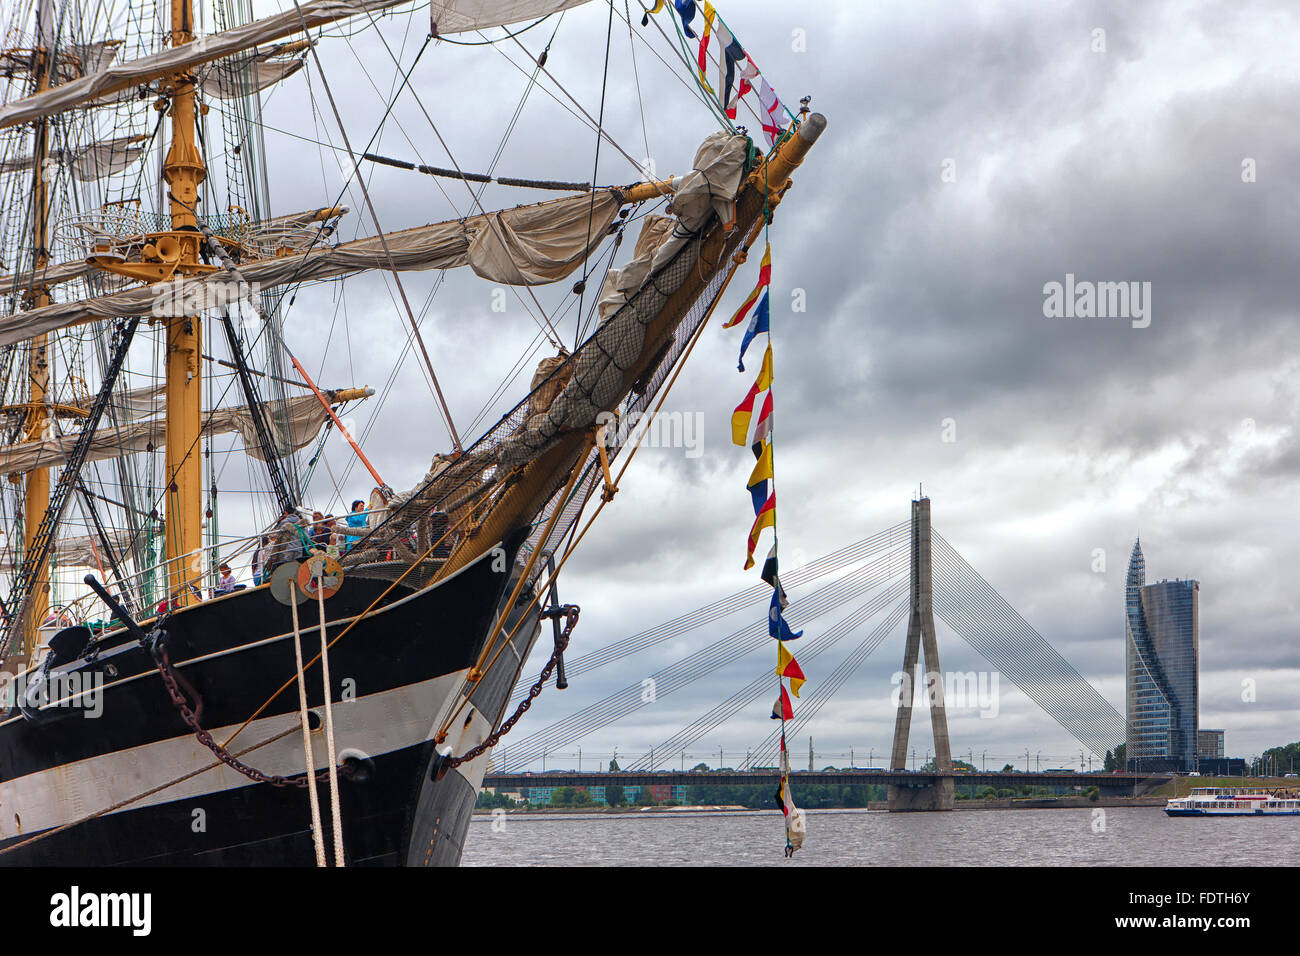 Big sailboat on the waterfront of the capital of Latvia in Riga on the background of a suspension bridge and clouds - Stock Image